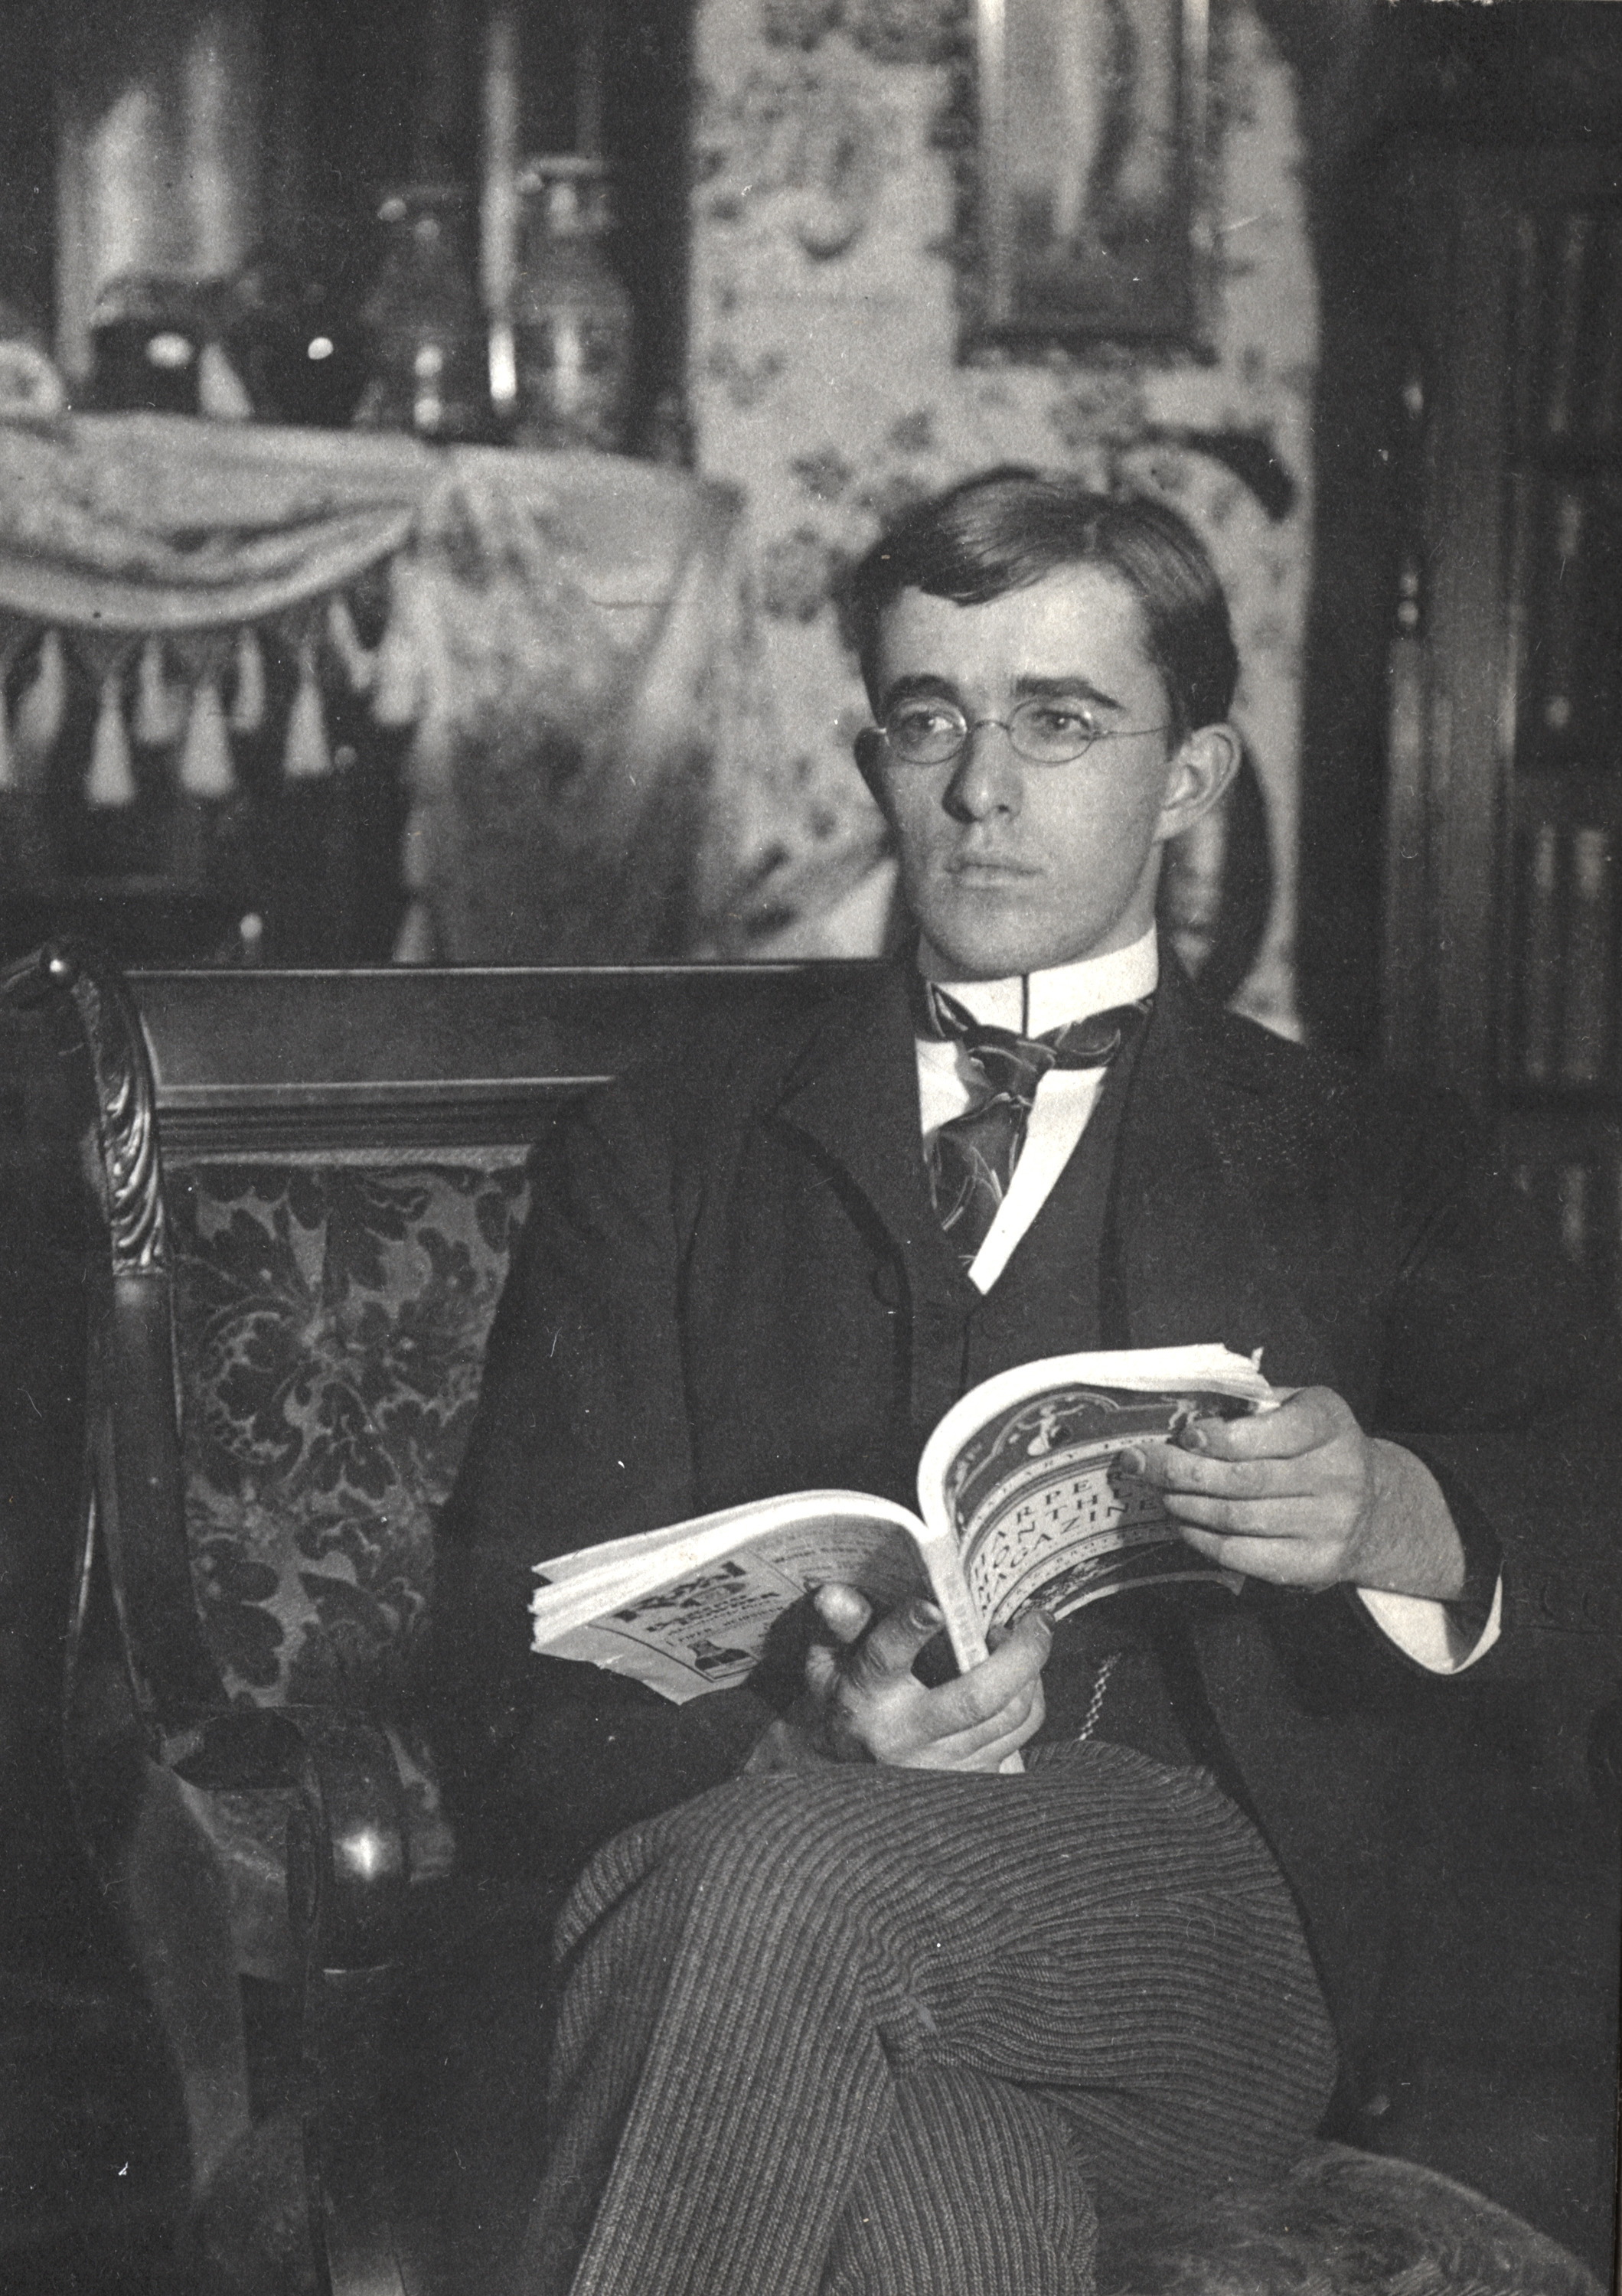 Irving Langmuir at home enjoying Harper's Magazine. Science History Institute